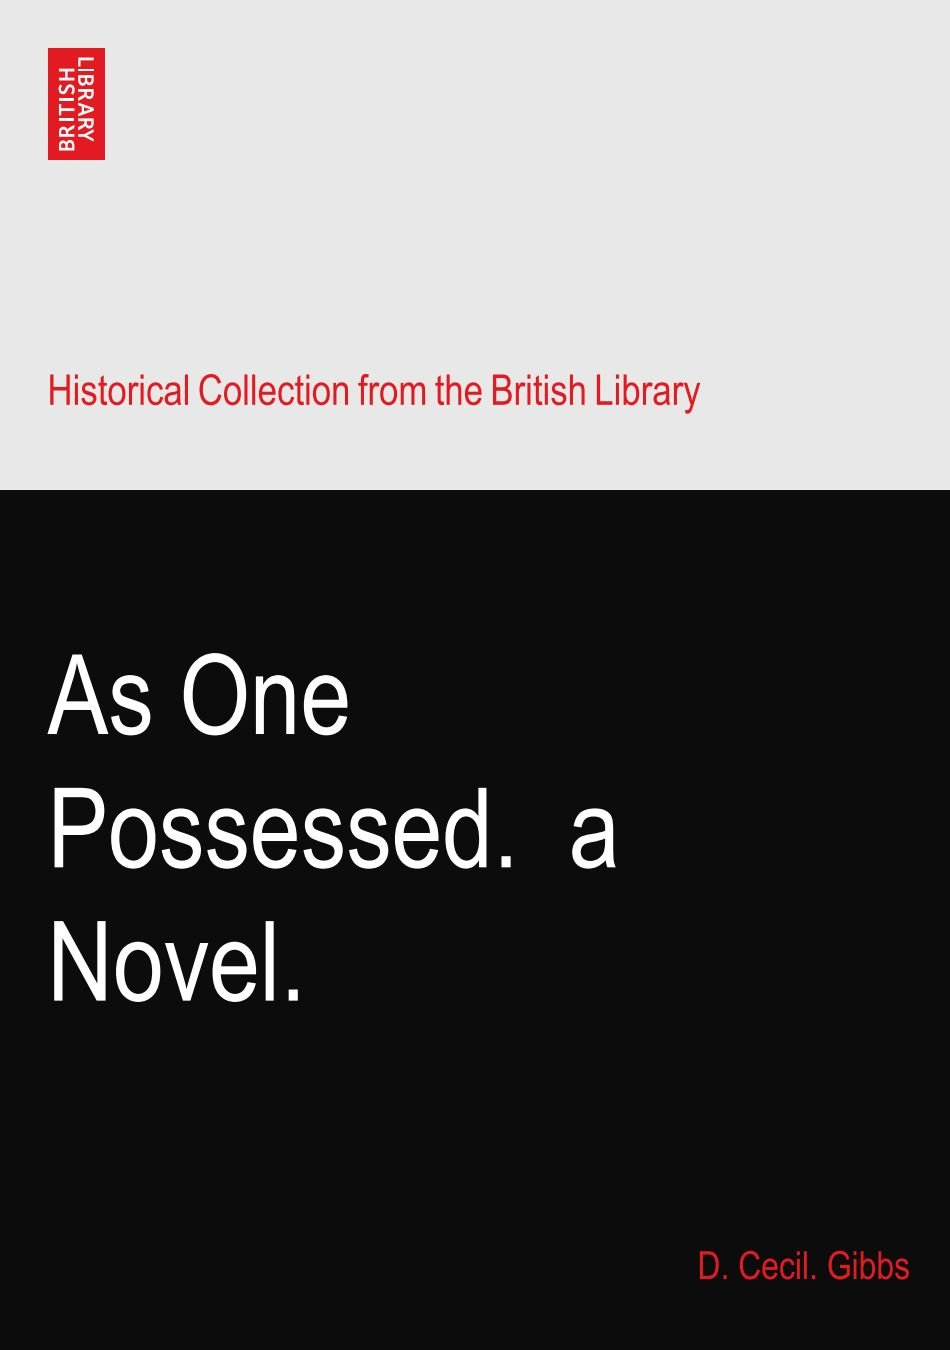 As One Possessed.? a Novel. ebook